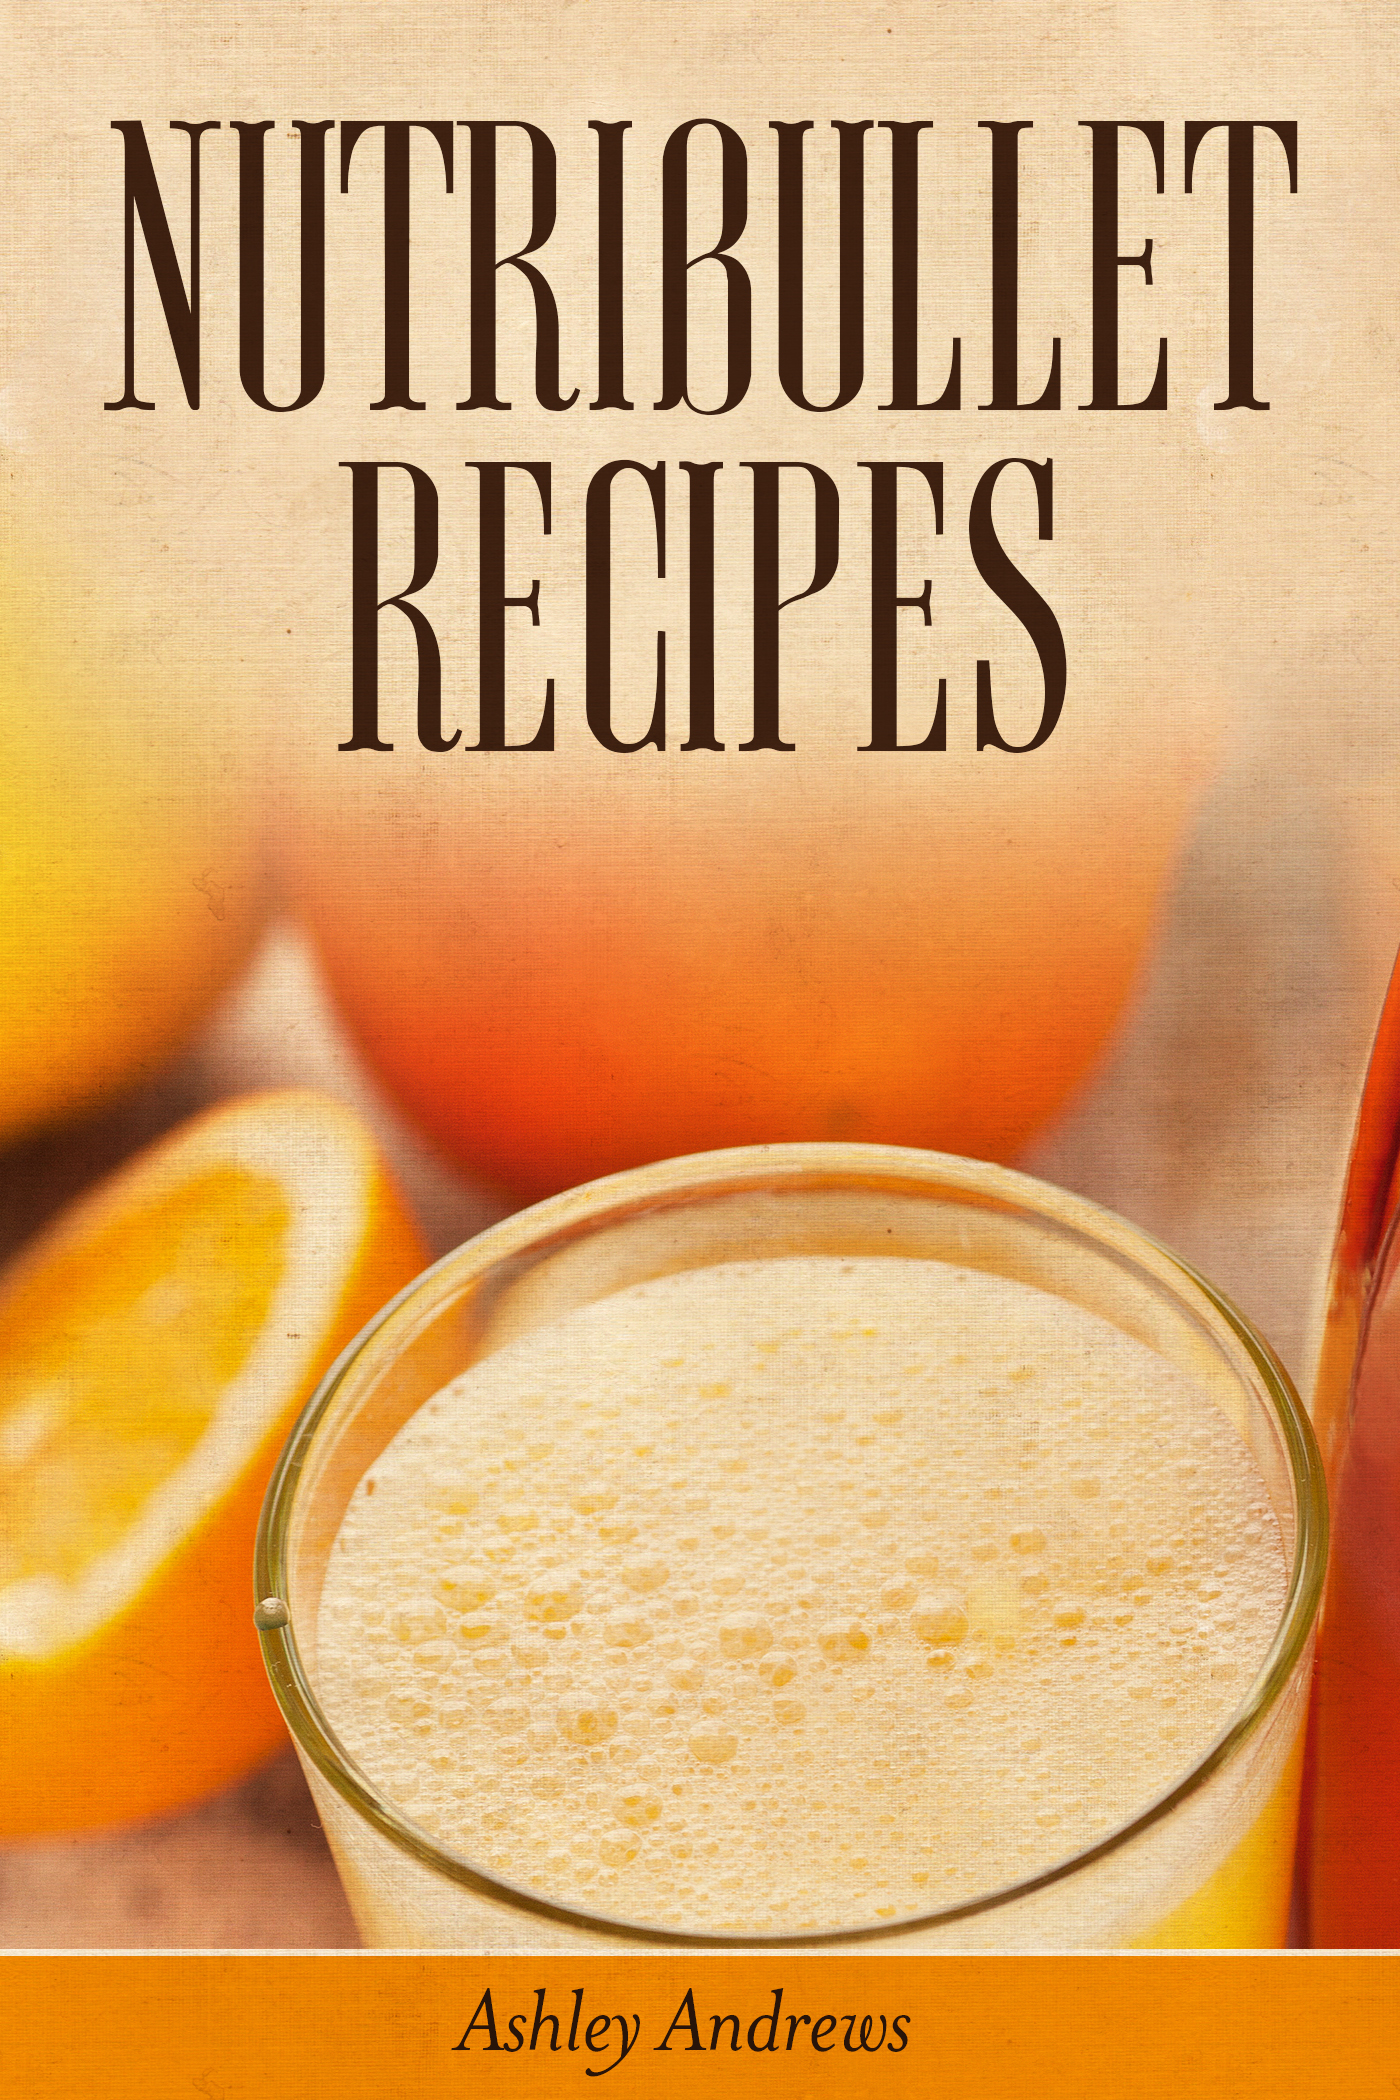 Nutribullet recipes: weight loss and smoothie recipes for your nutribullet